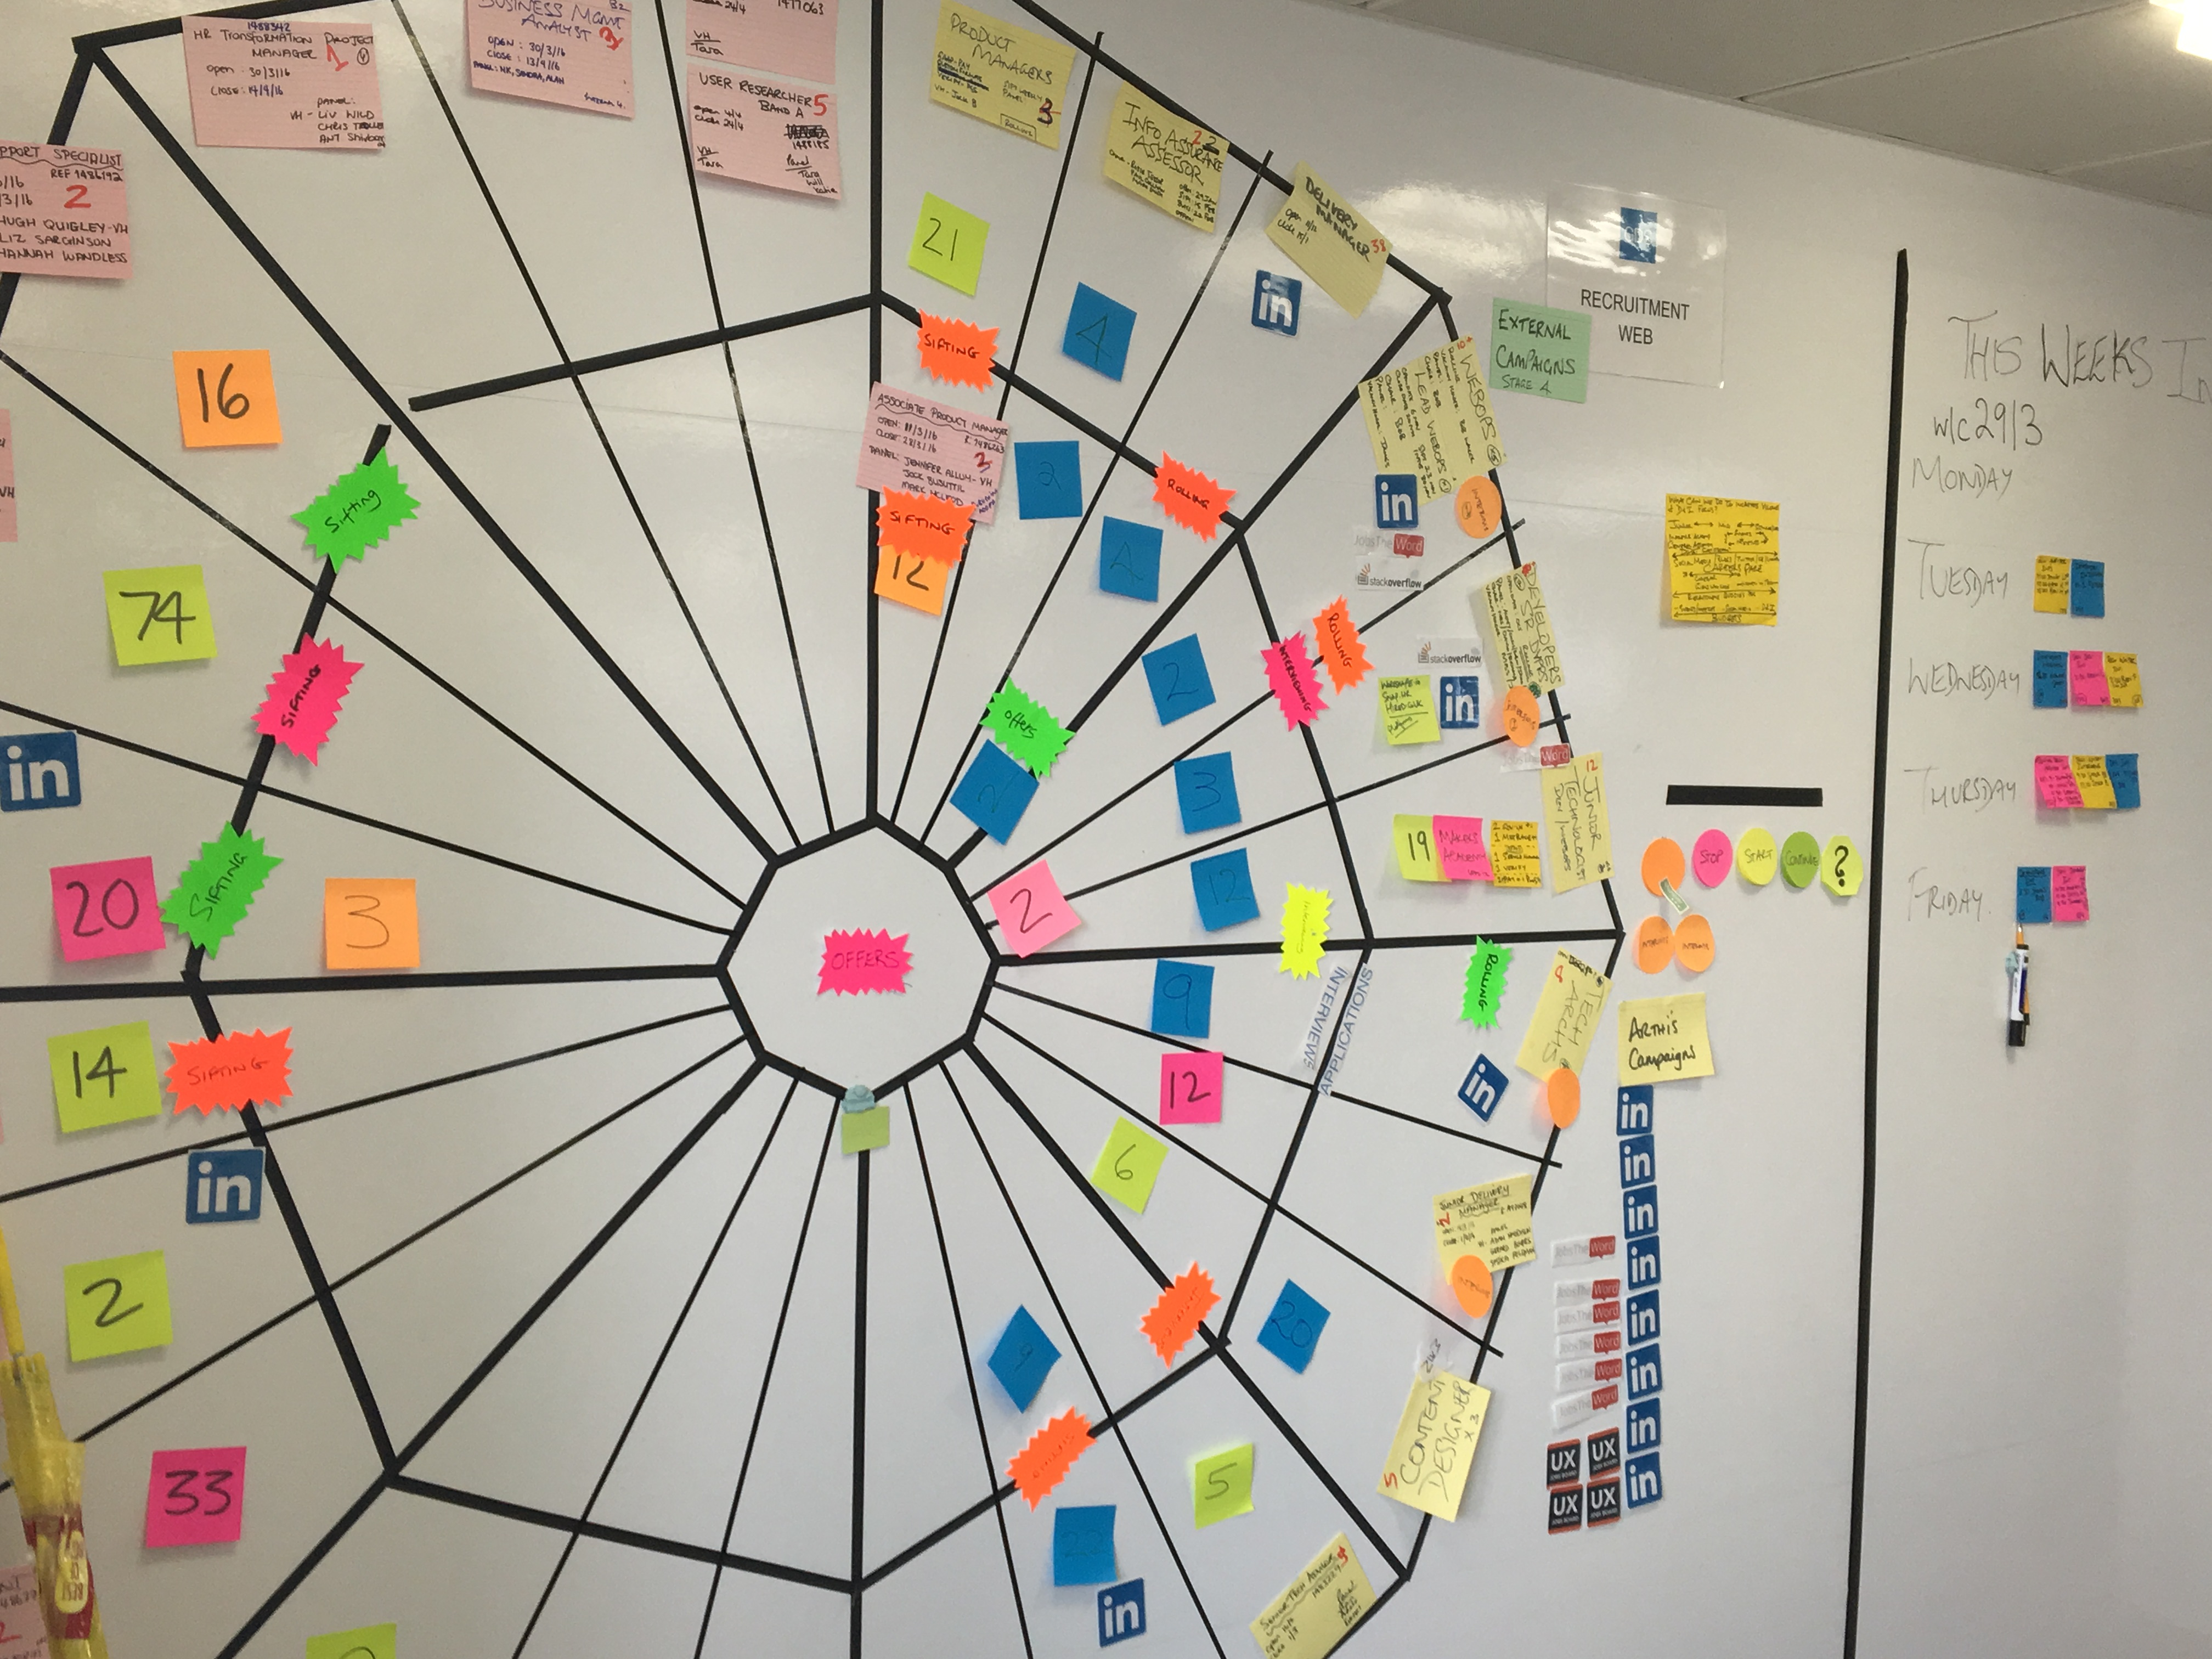 Spider chart with various post it-notes of numbers, LinkedIn logos and other blurred out writings